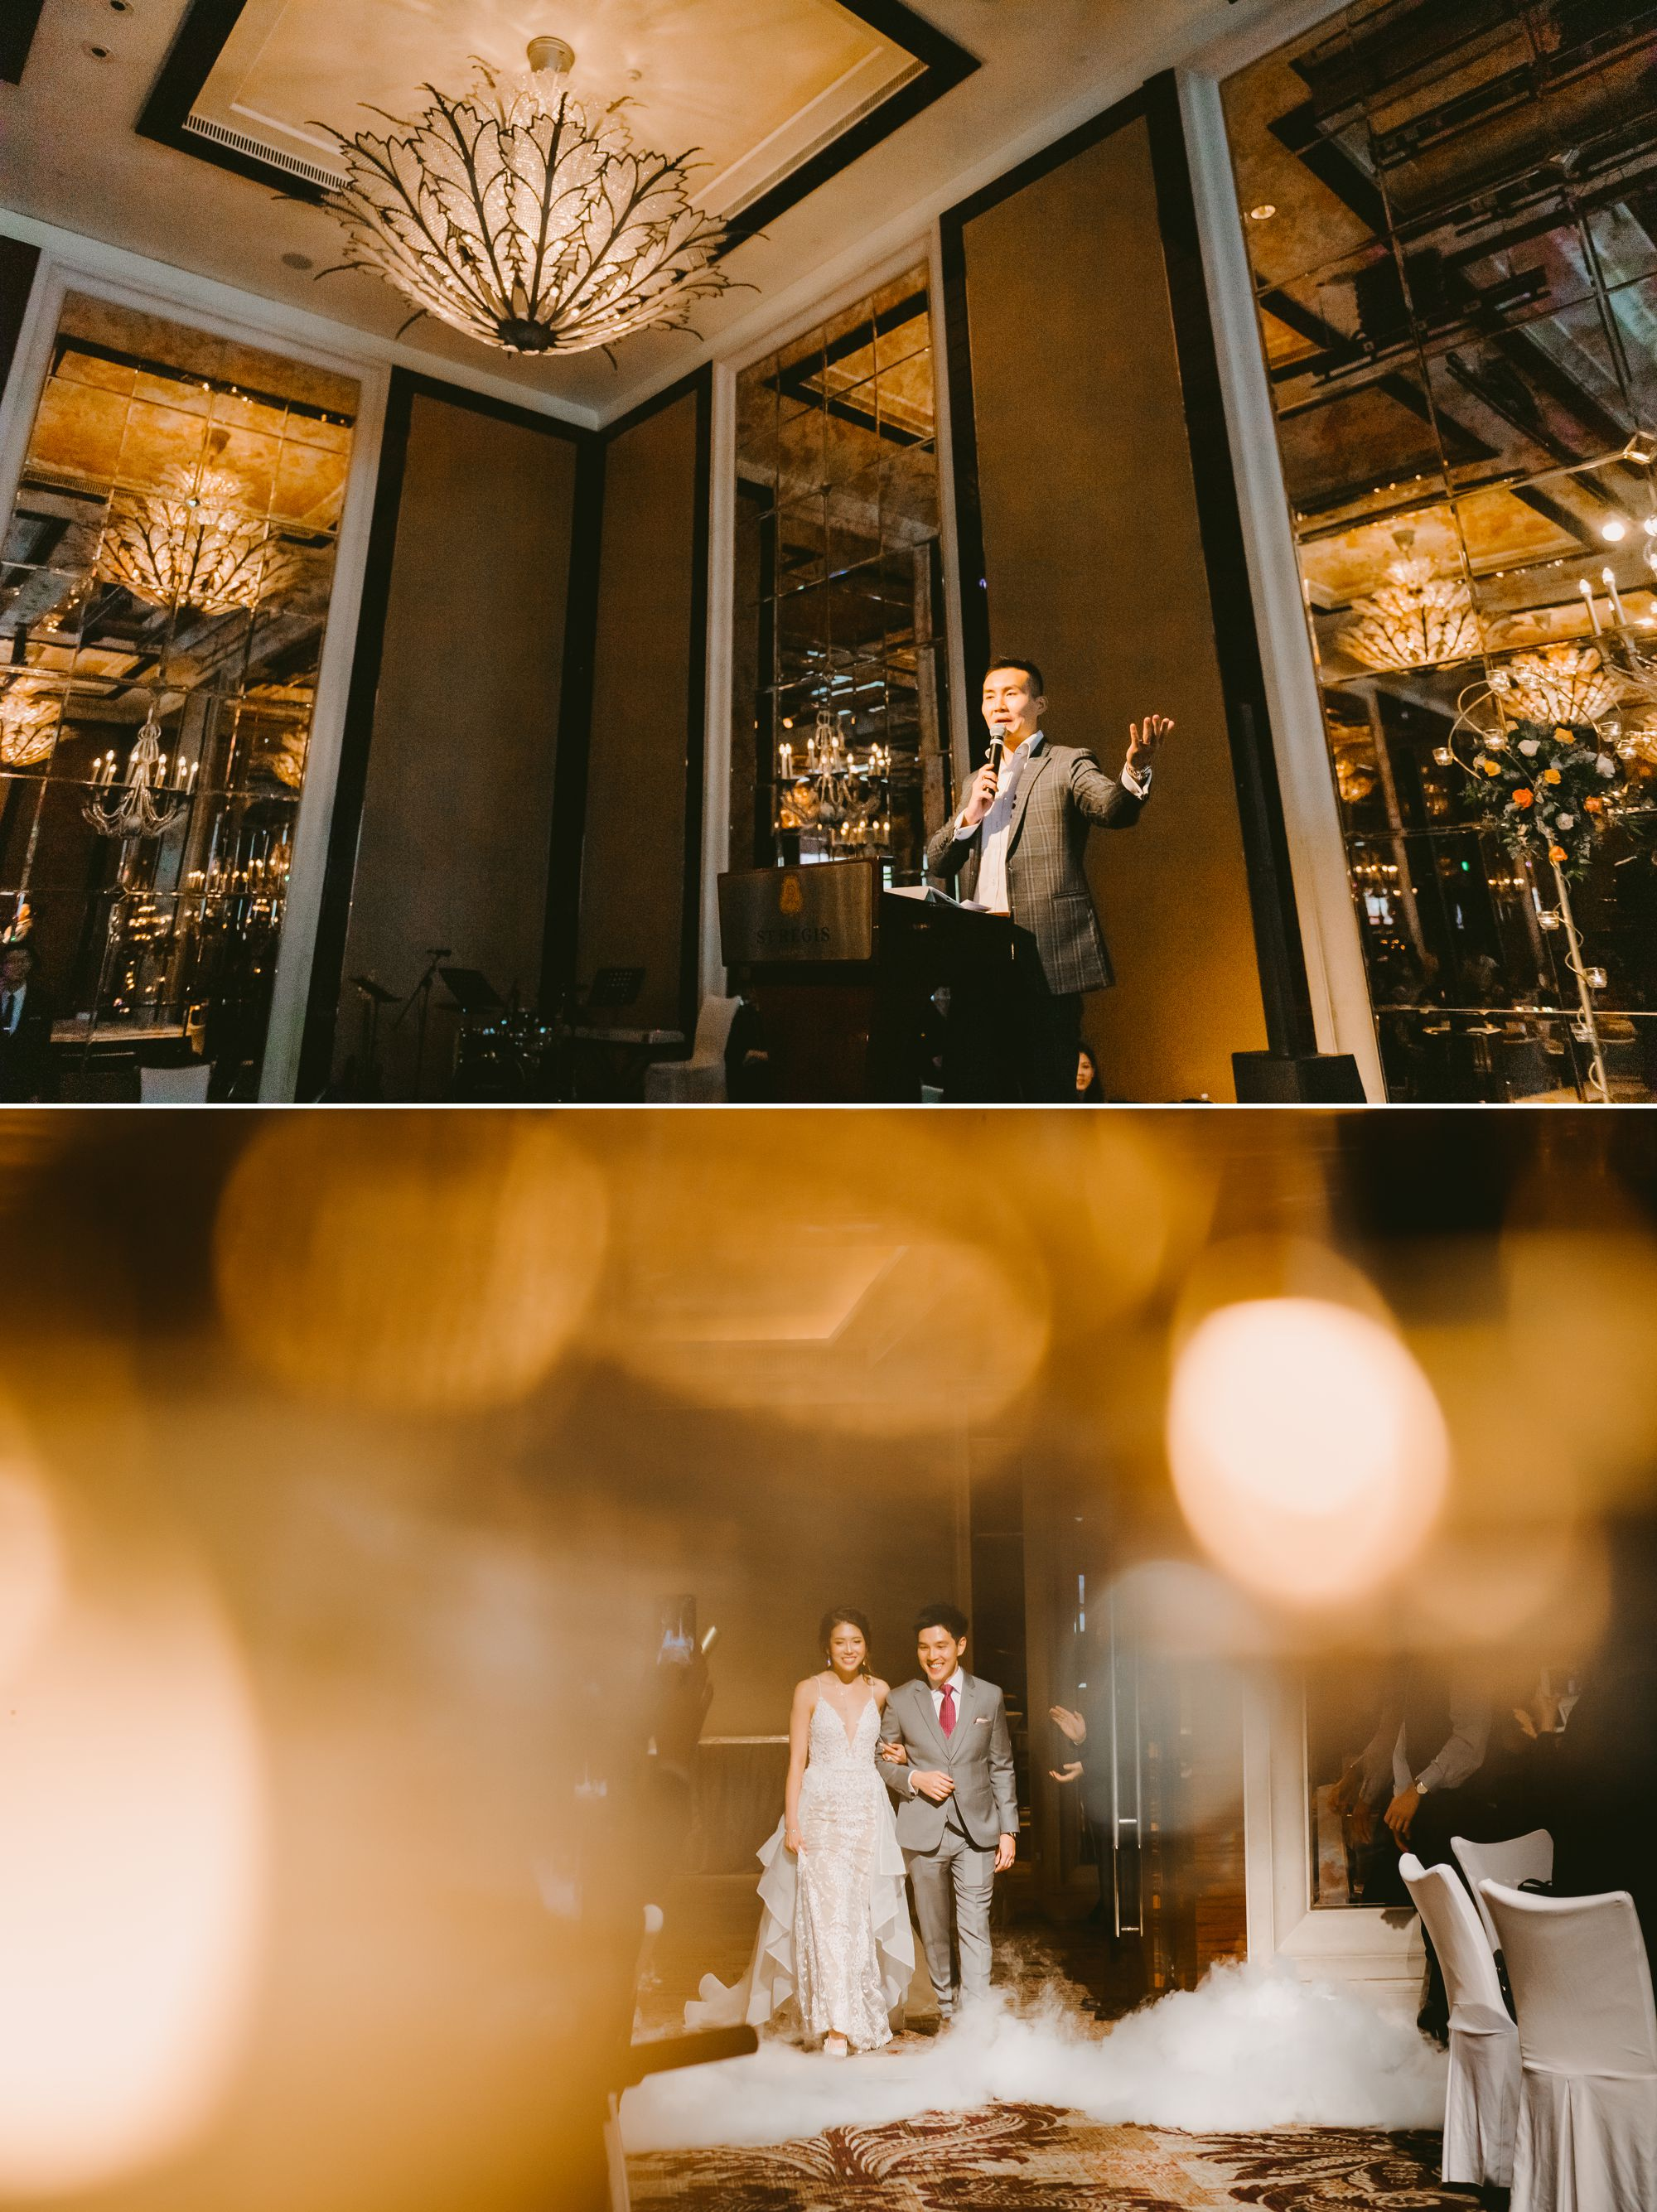 st_regis_singapore_wedding 34.jpg